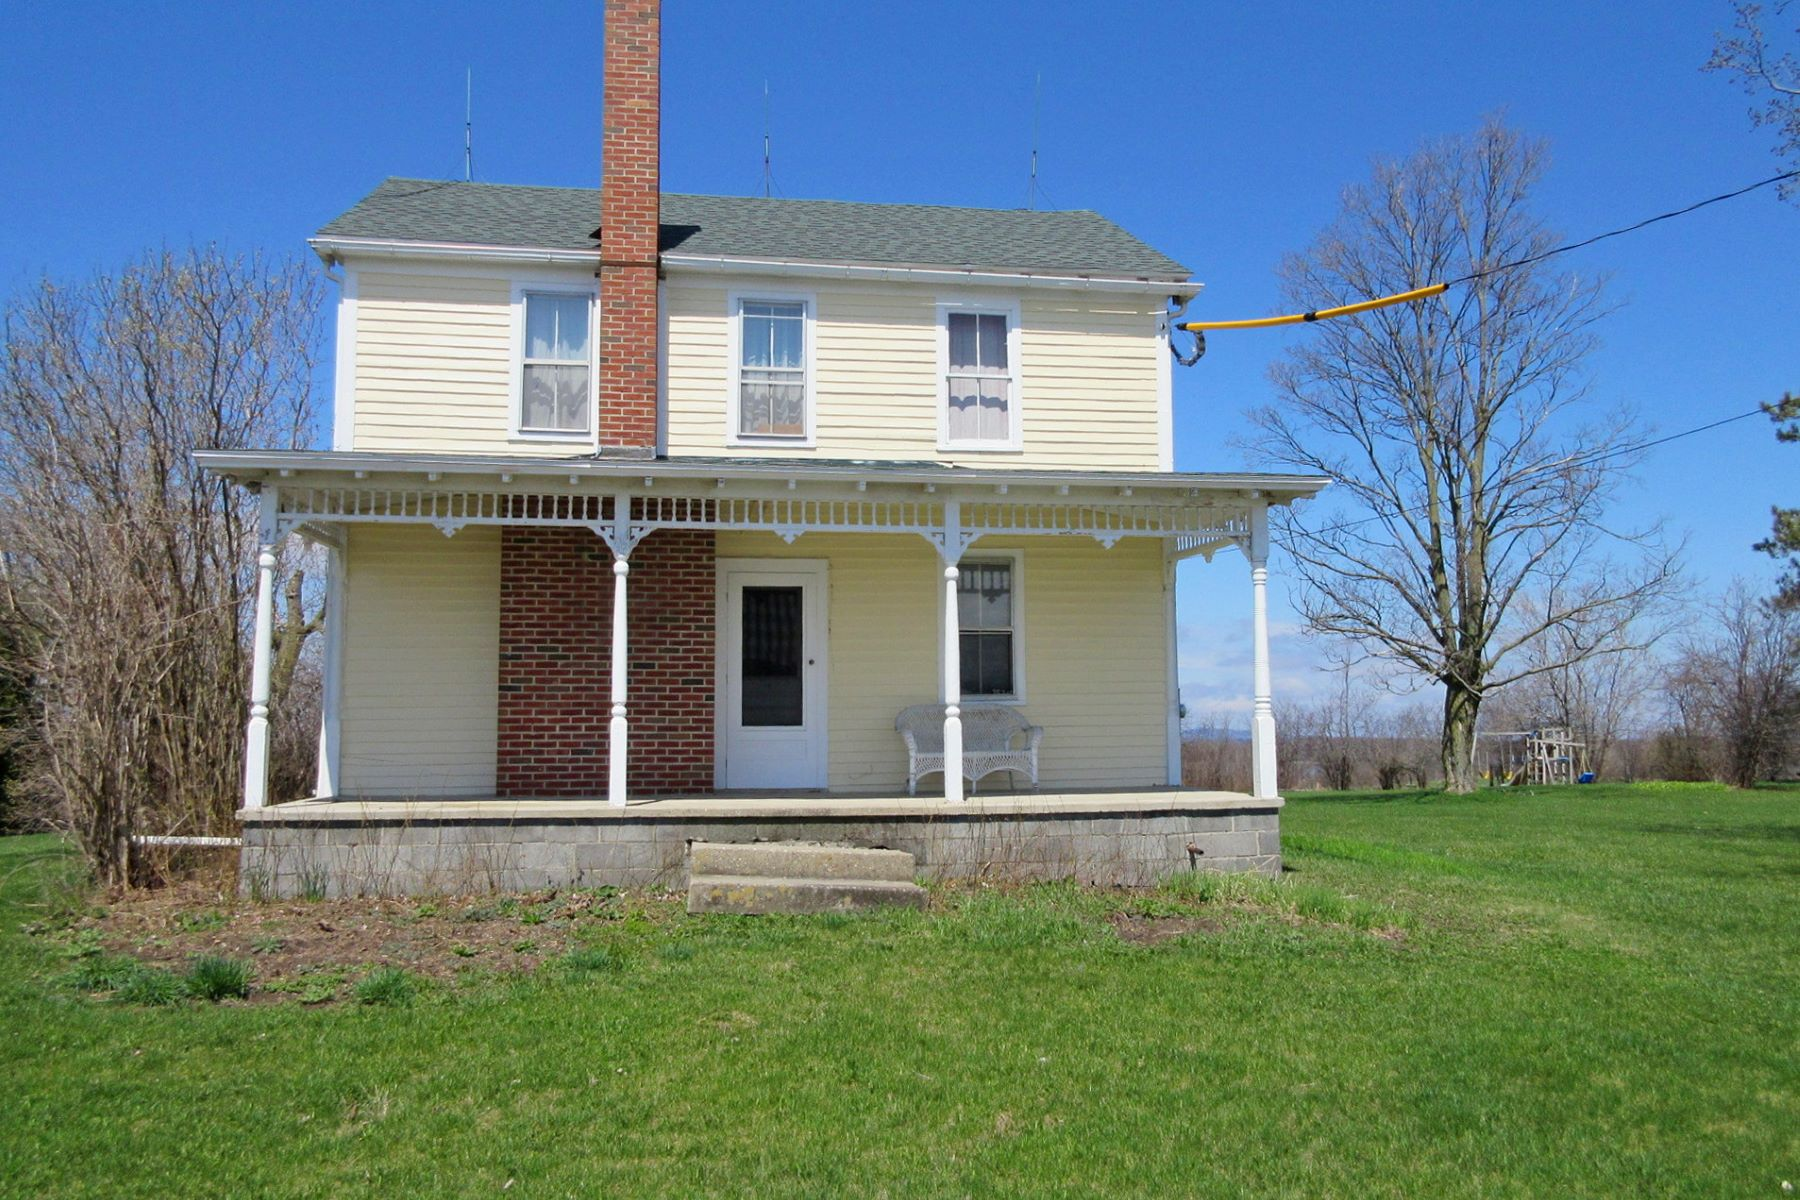 Single Family Home for Sale at 3536 West Salisbury Road, Salisbury 3536 West Salisbury Rd Salisbury, Vermont 05769 United States